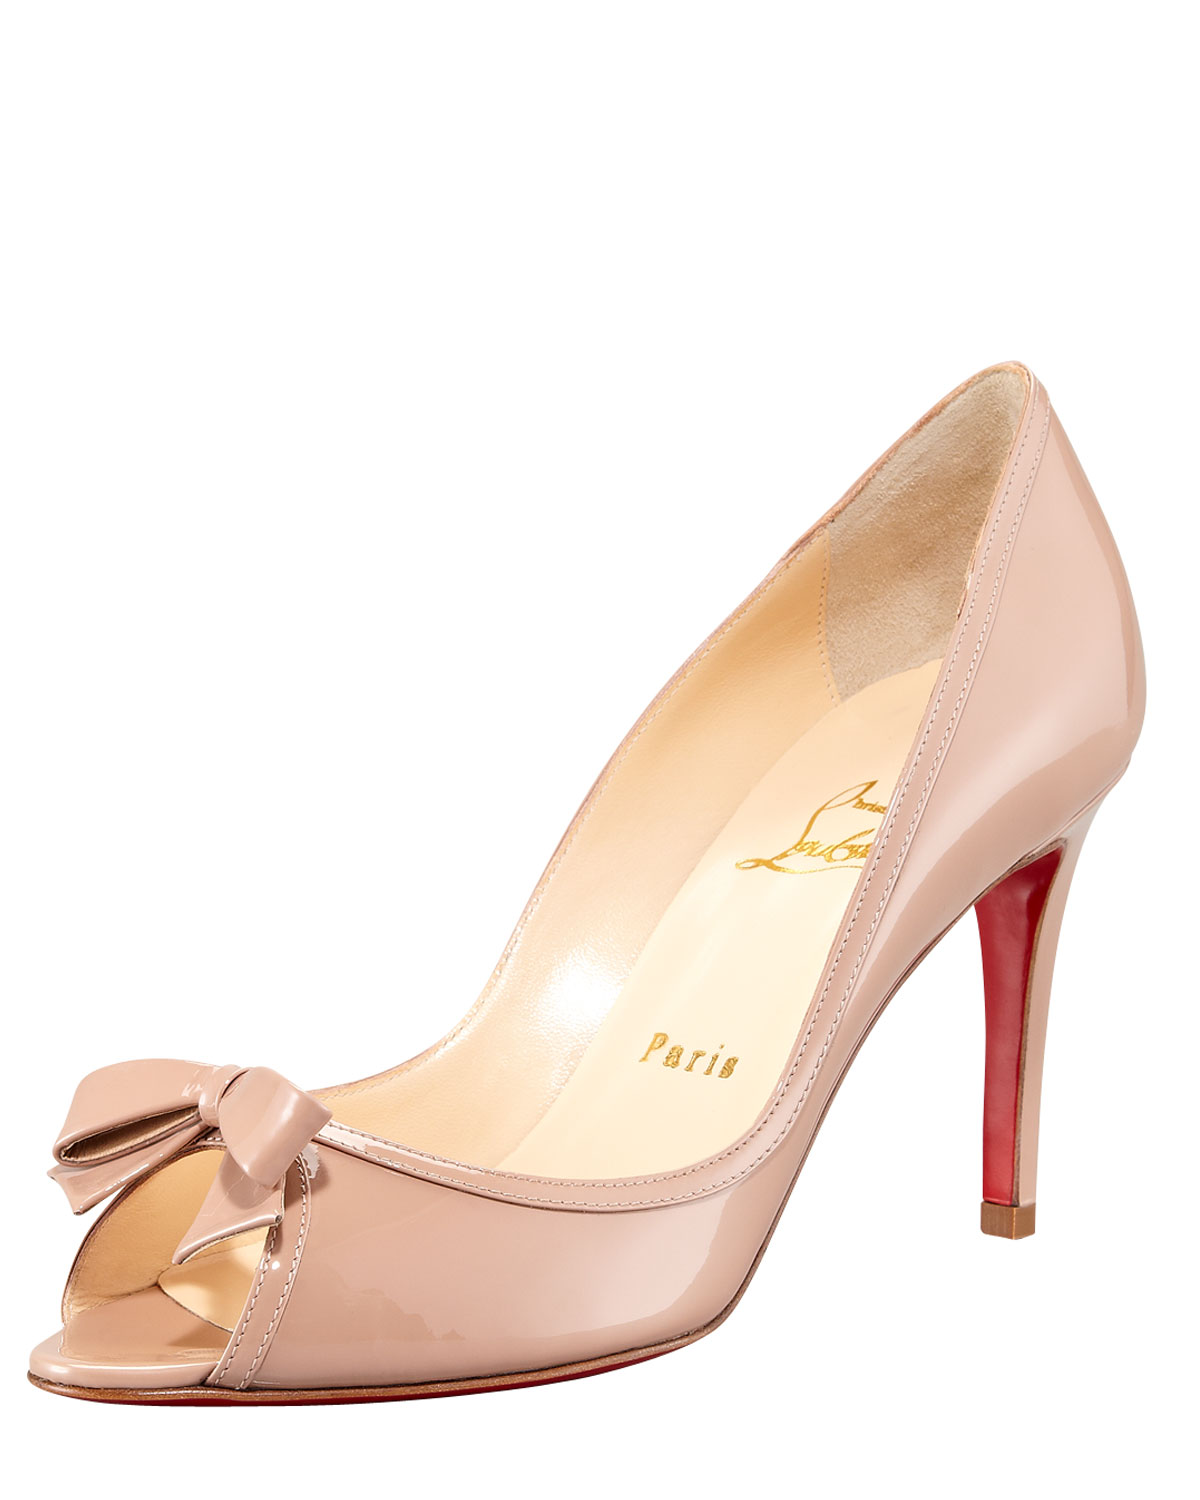 8544905e640 Christian Louboutin Black Milady Patent Leather Bow Peeptoe Red Sole Pump